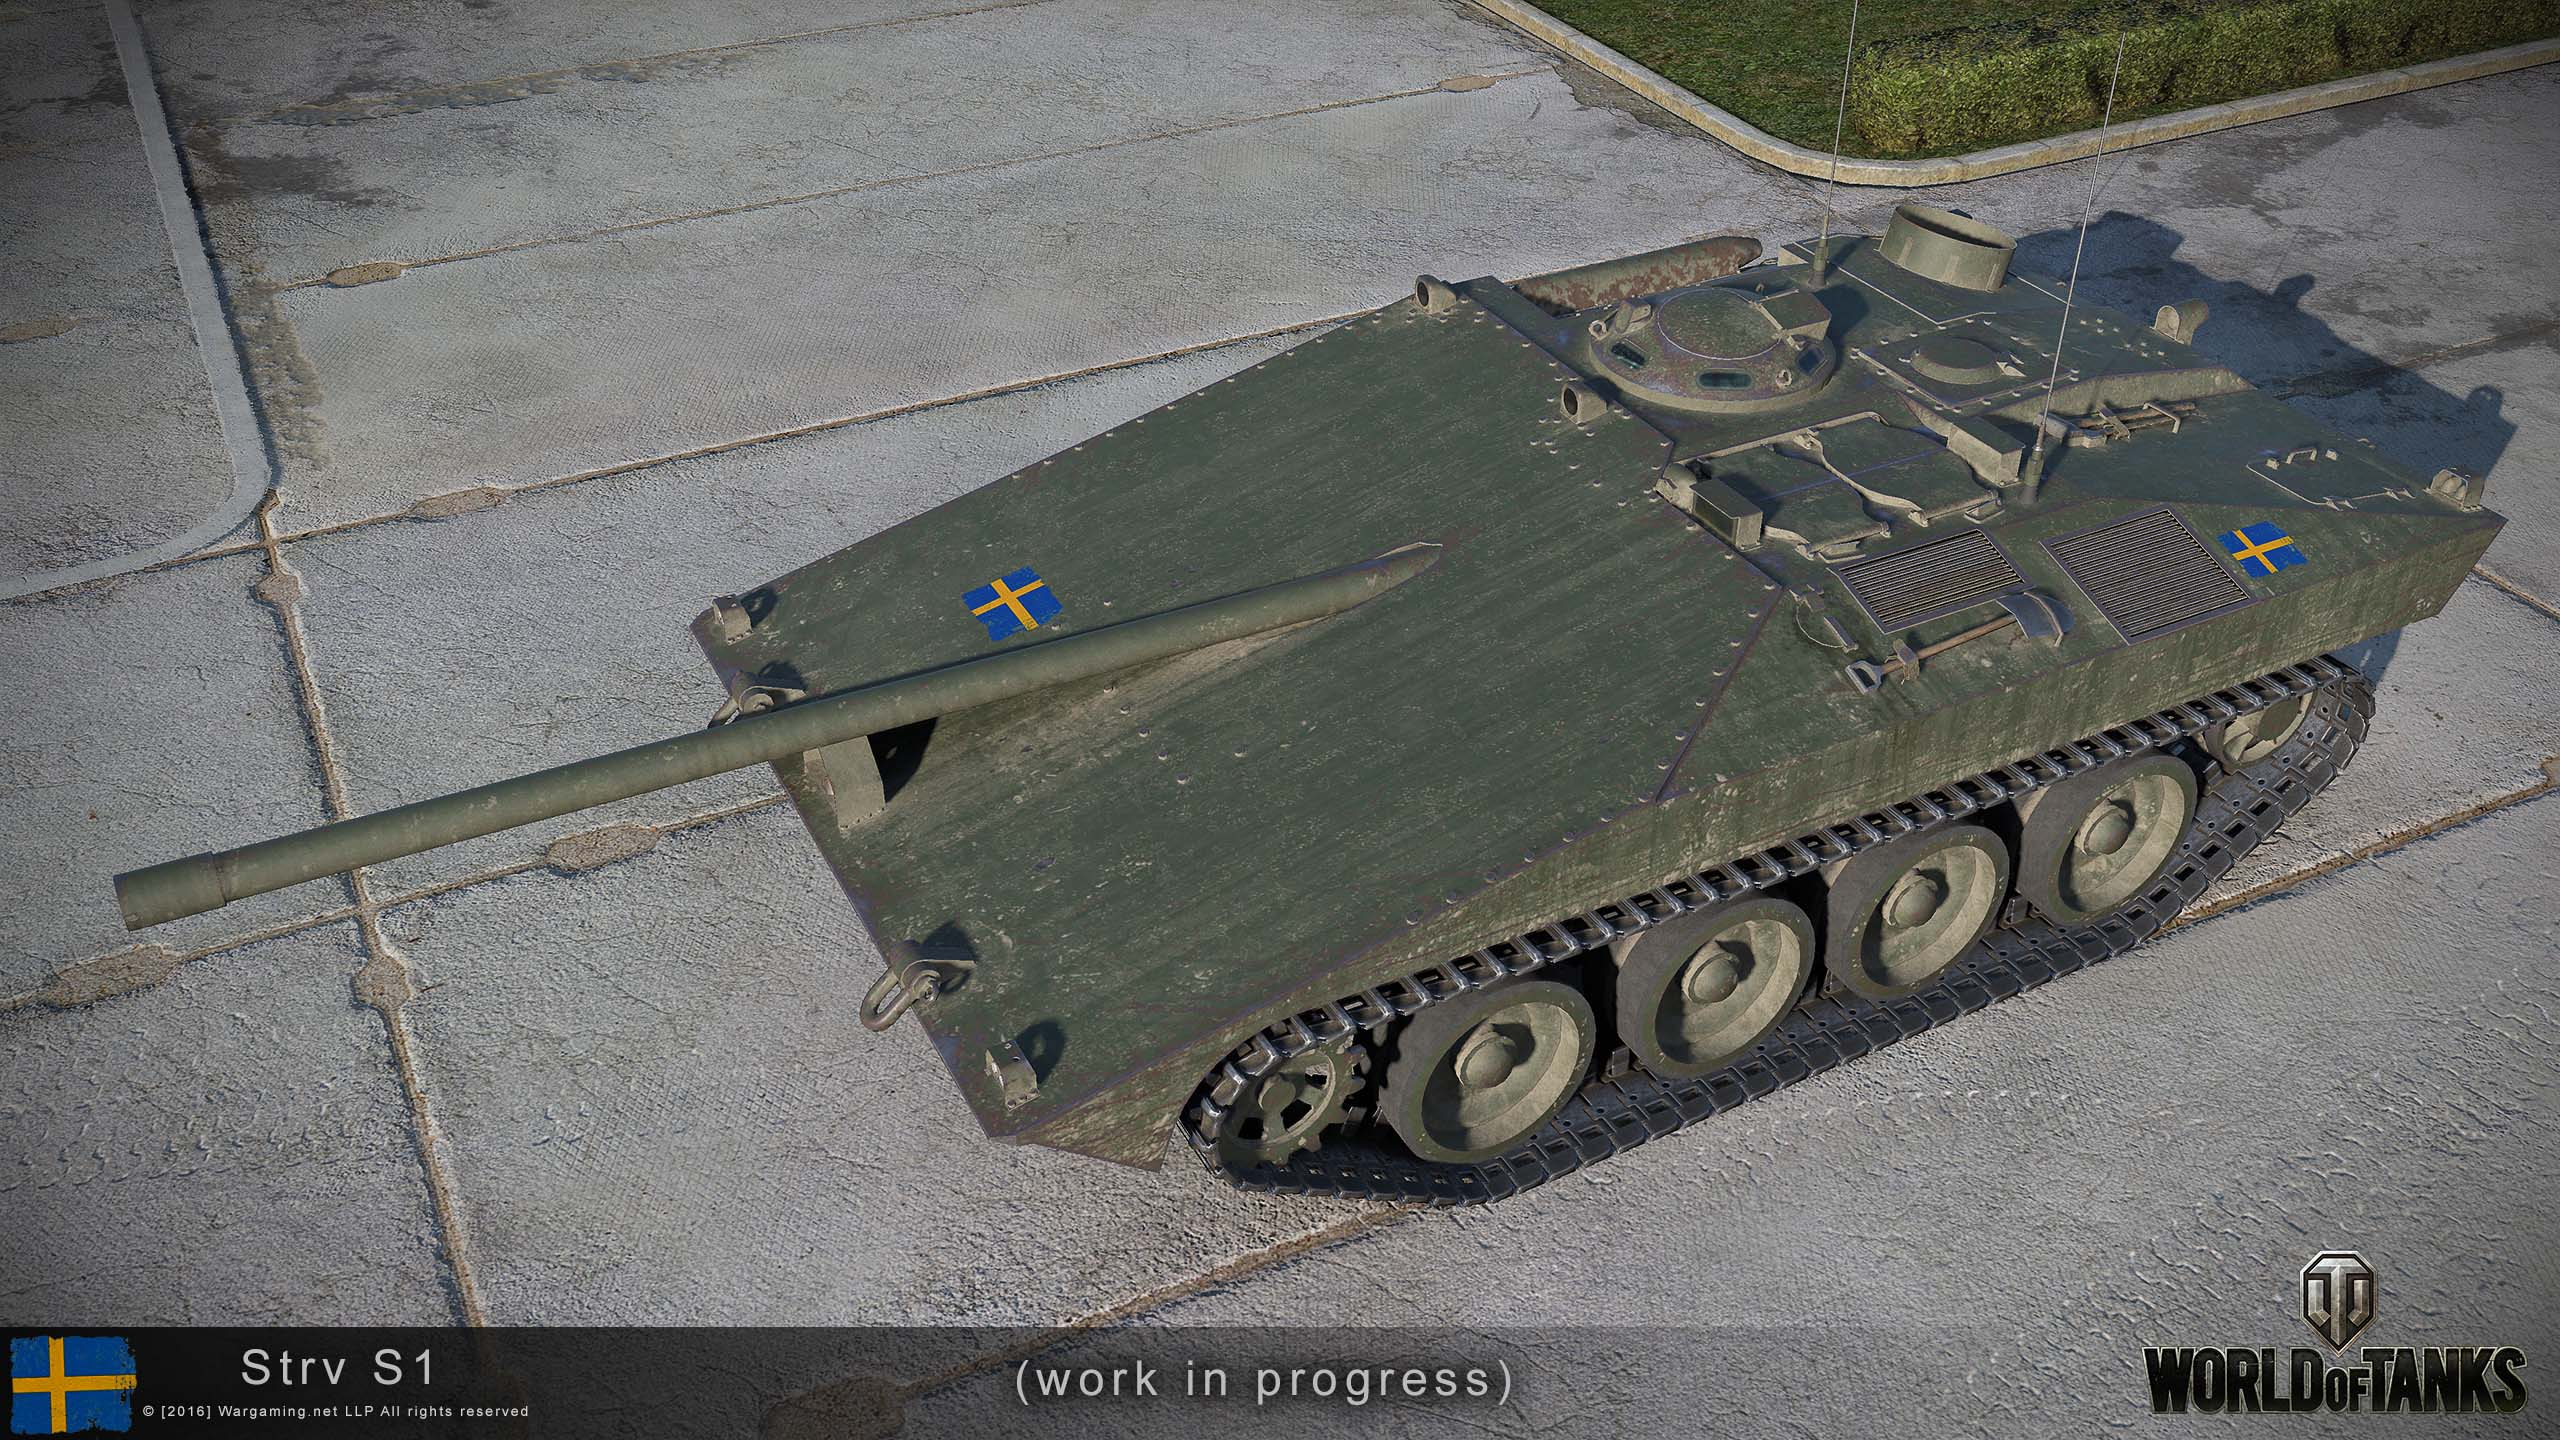 World of Tanks players have been lucky enough to receive another tech tree in the form of the Swedish line, and now there's soon to be some new additions. Check out the frontal armor on the Strv S1!